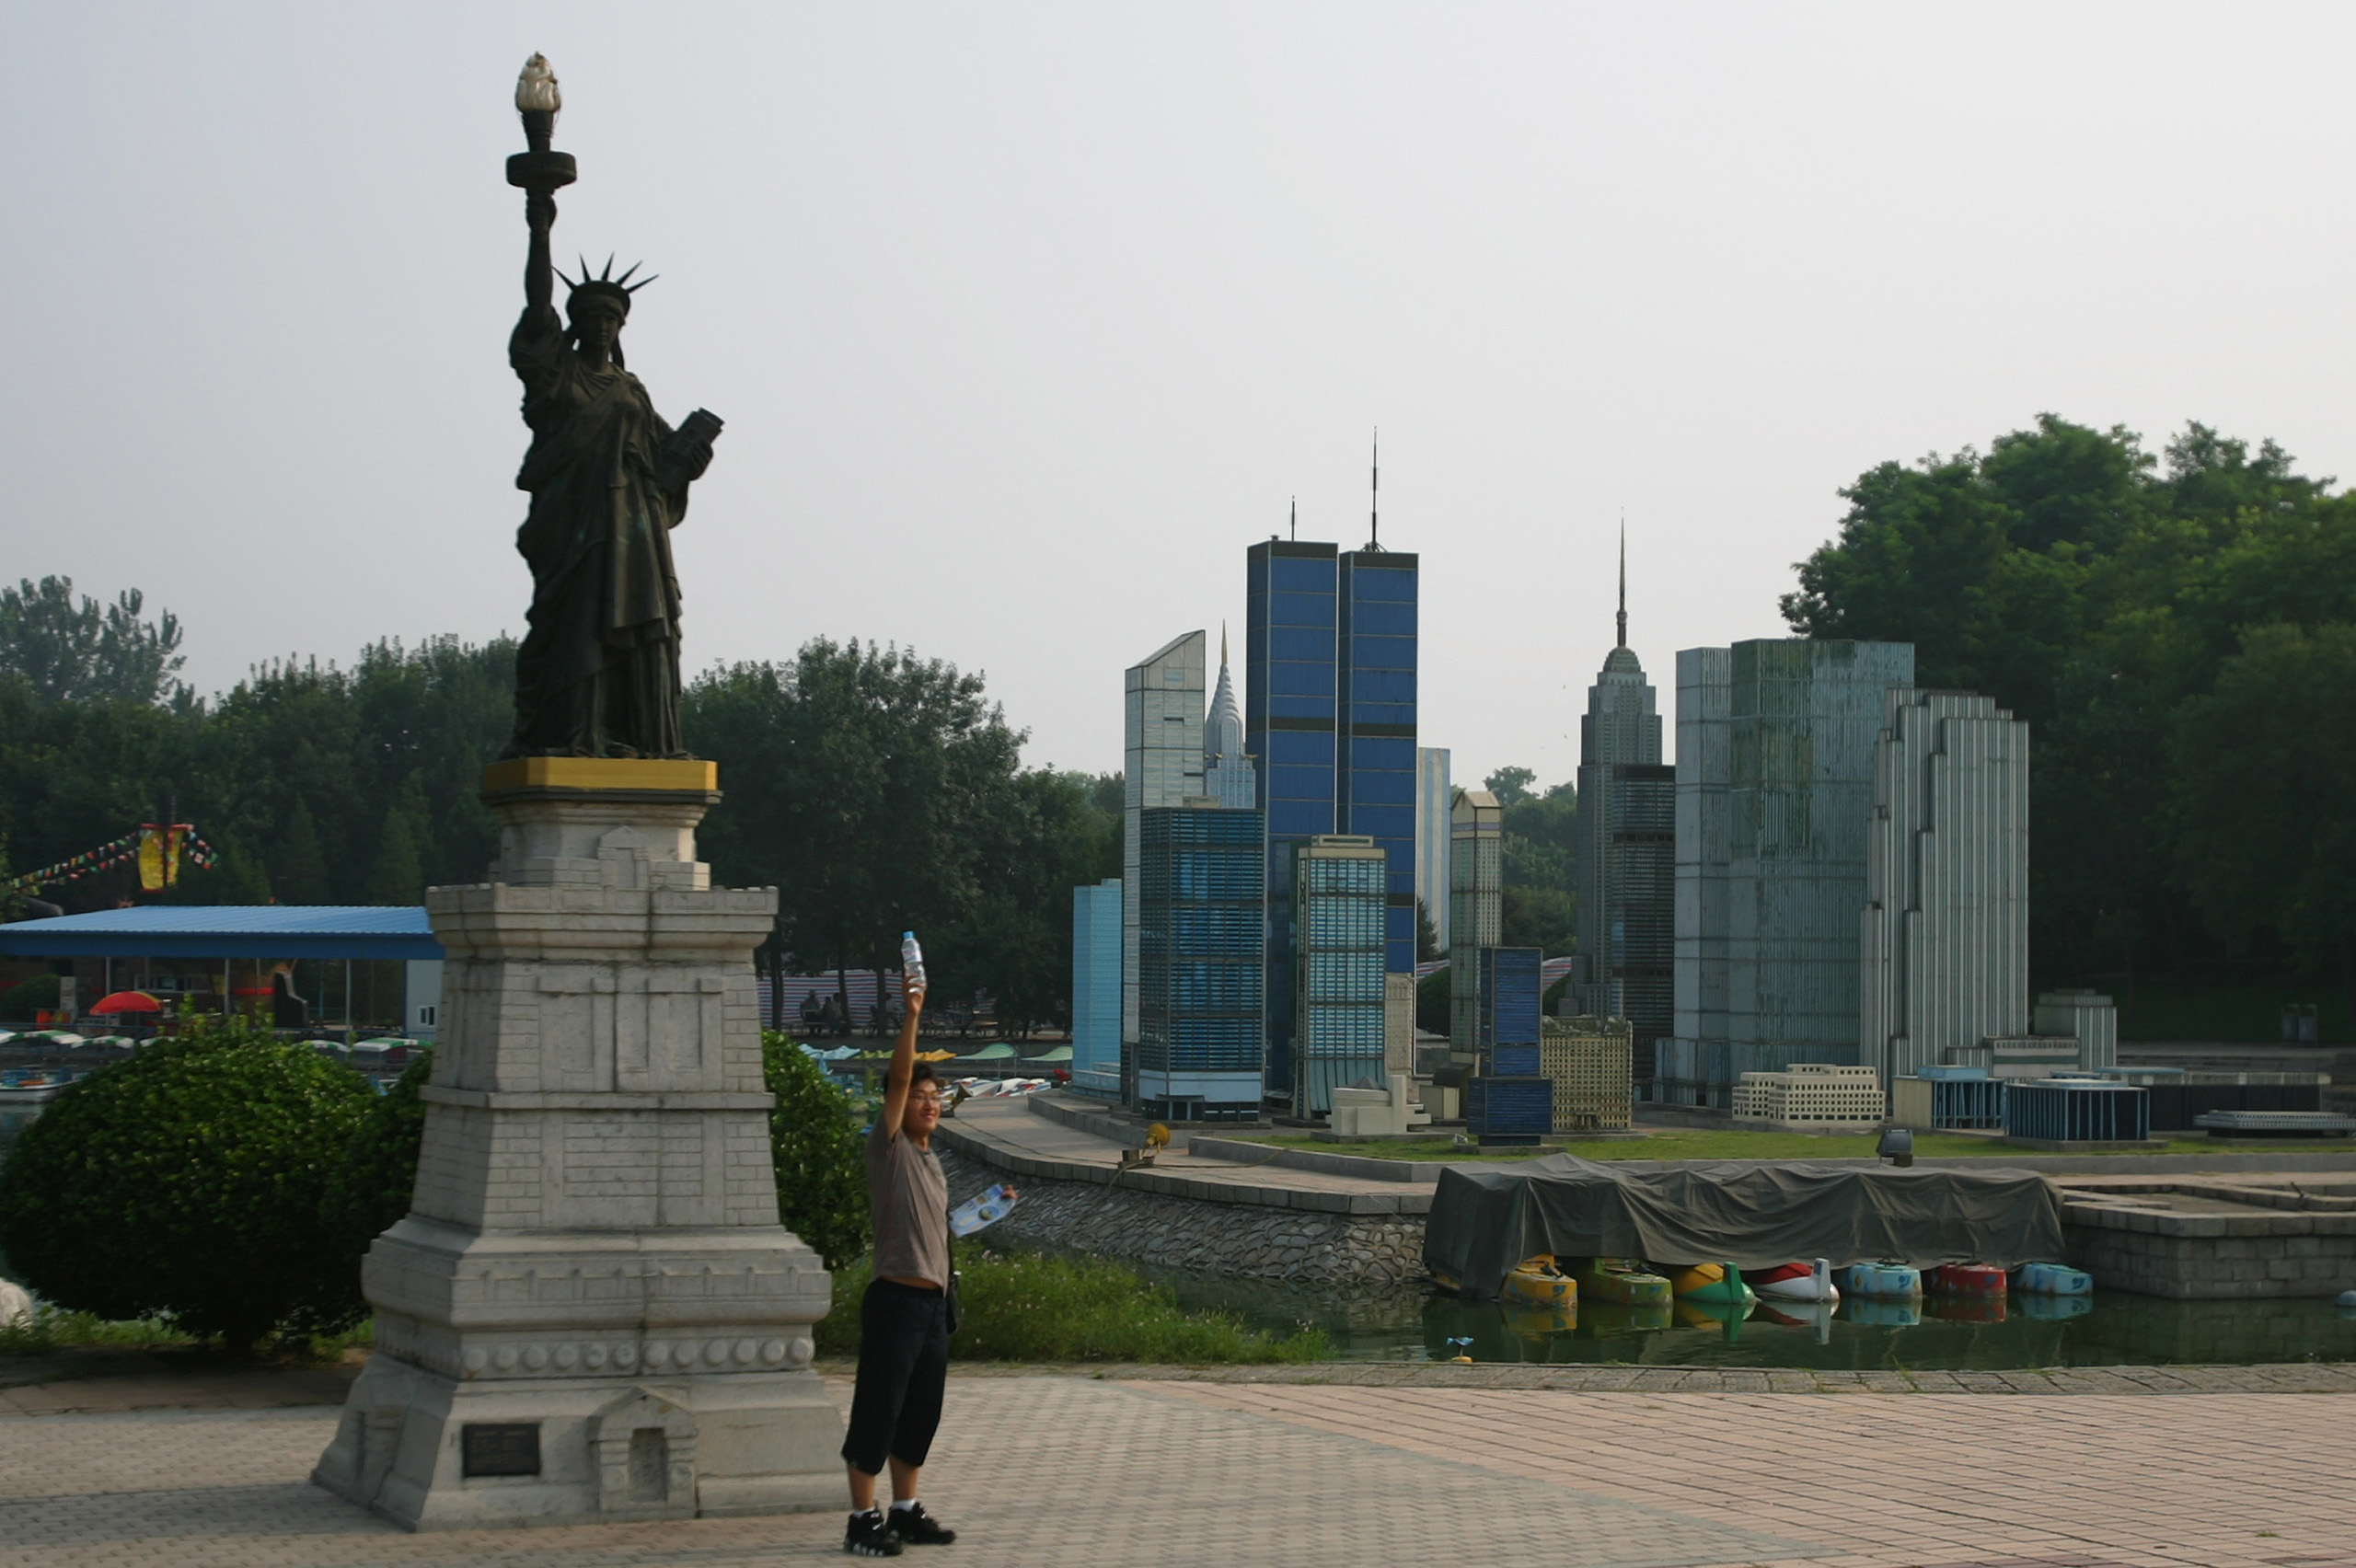 A man holds up a water bottle to mimic a replica of the Statue of Liberty near replicas of the New York skyline at the World Park in Beijing.